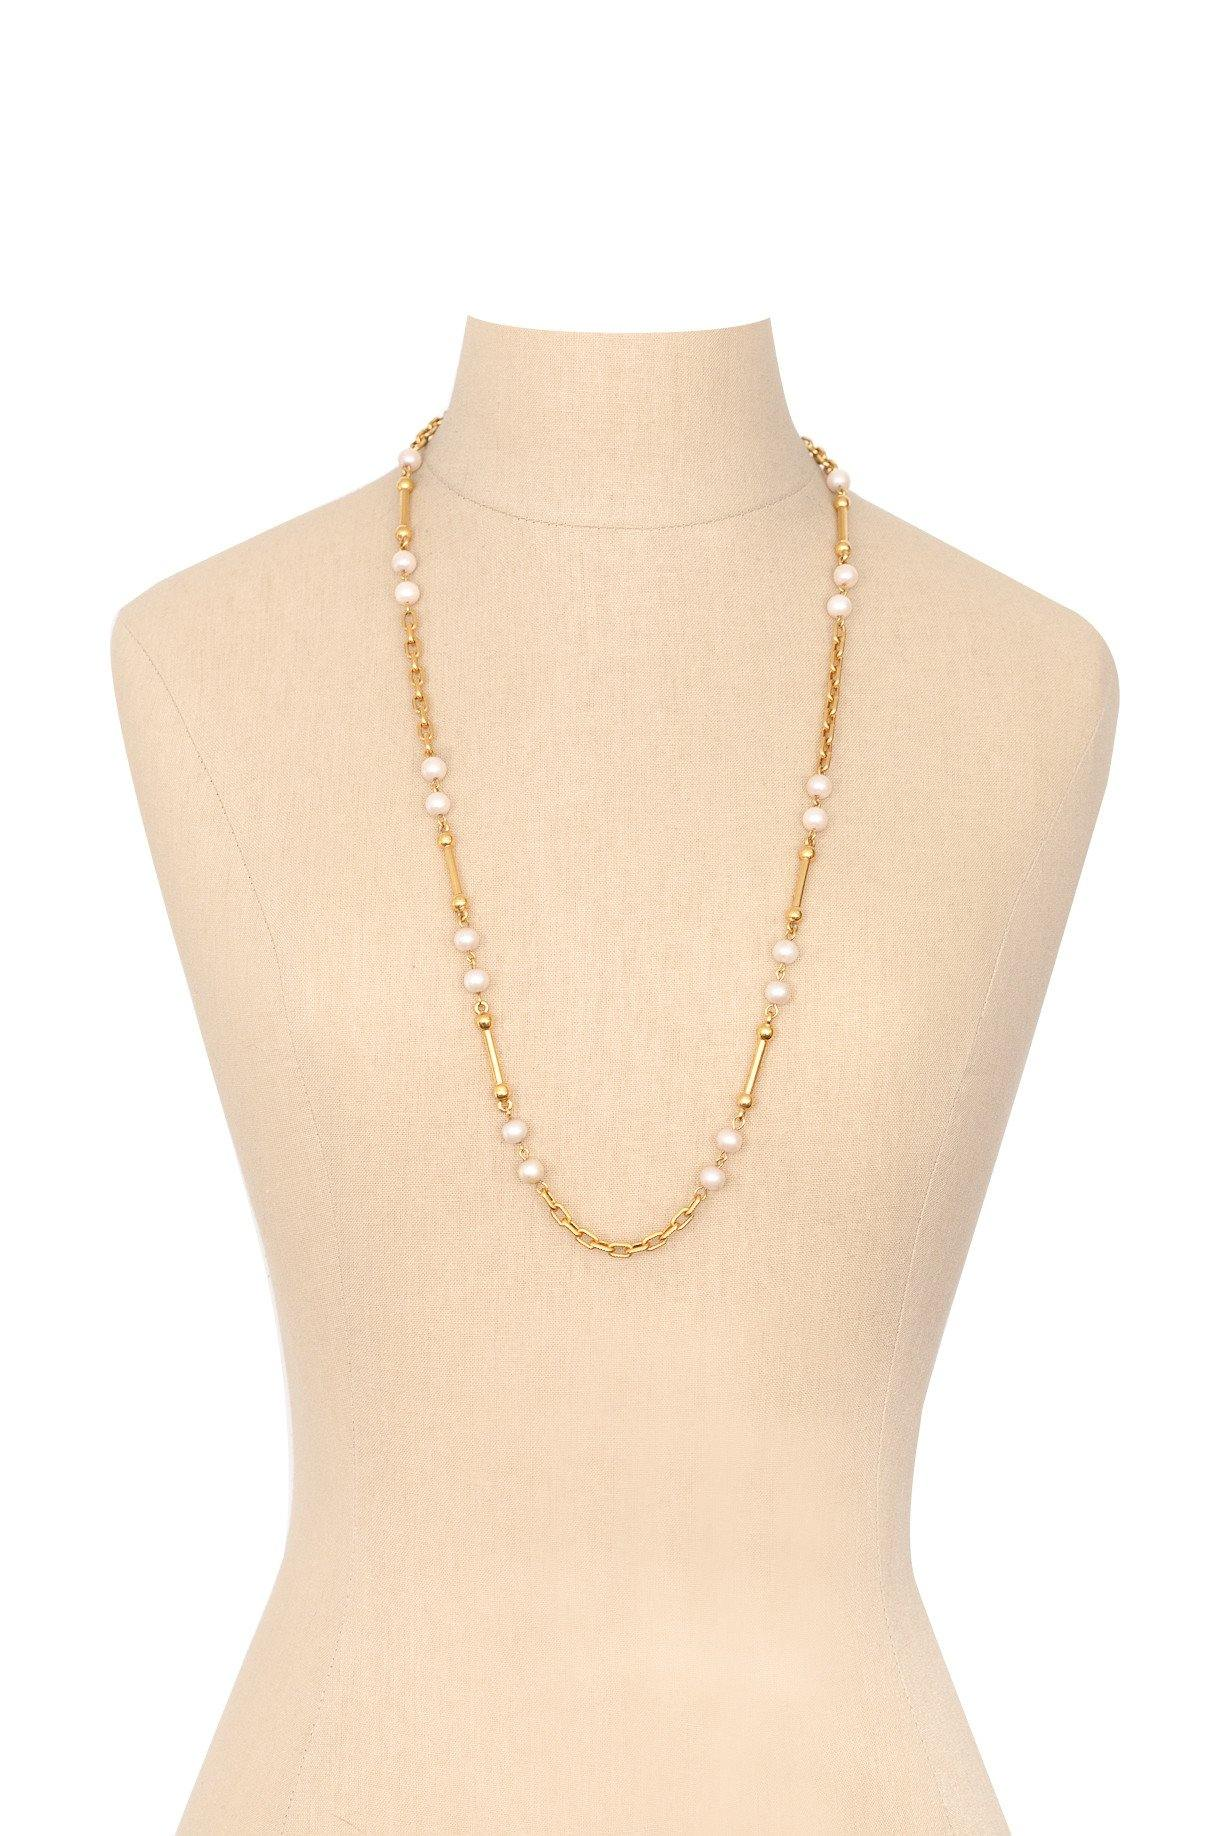 80's__Amway__Pearl Layering Necklace